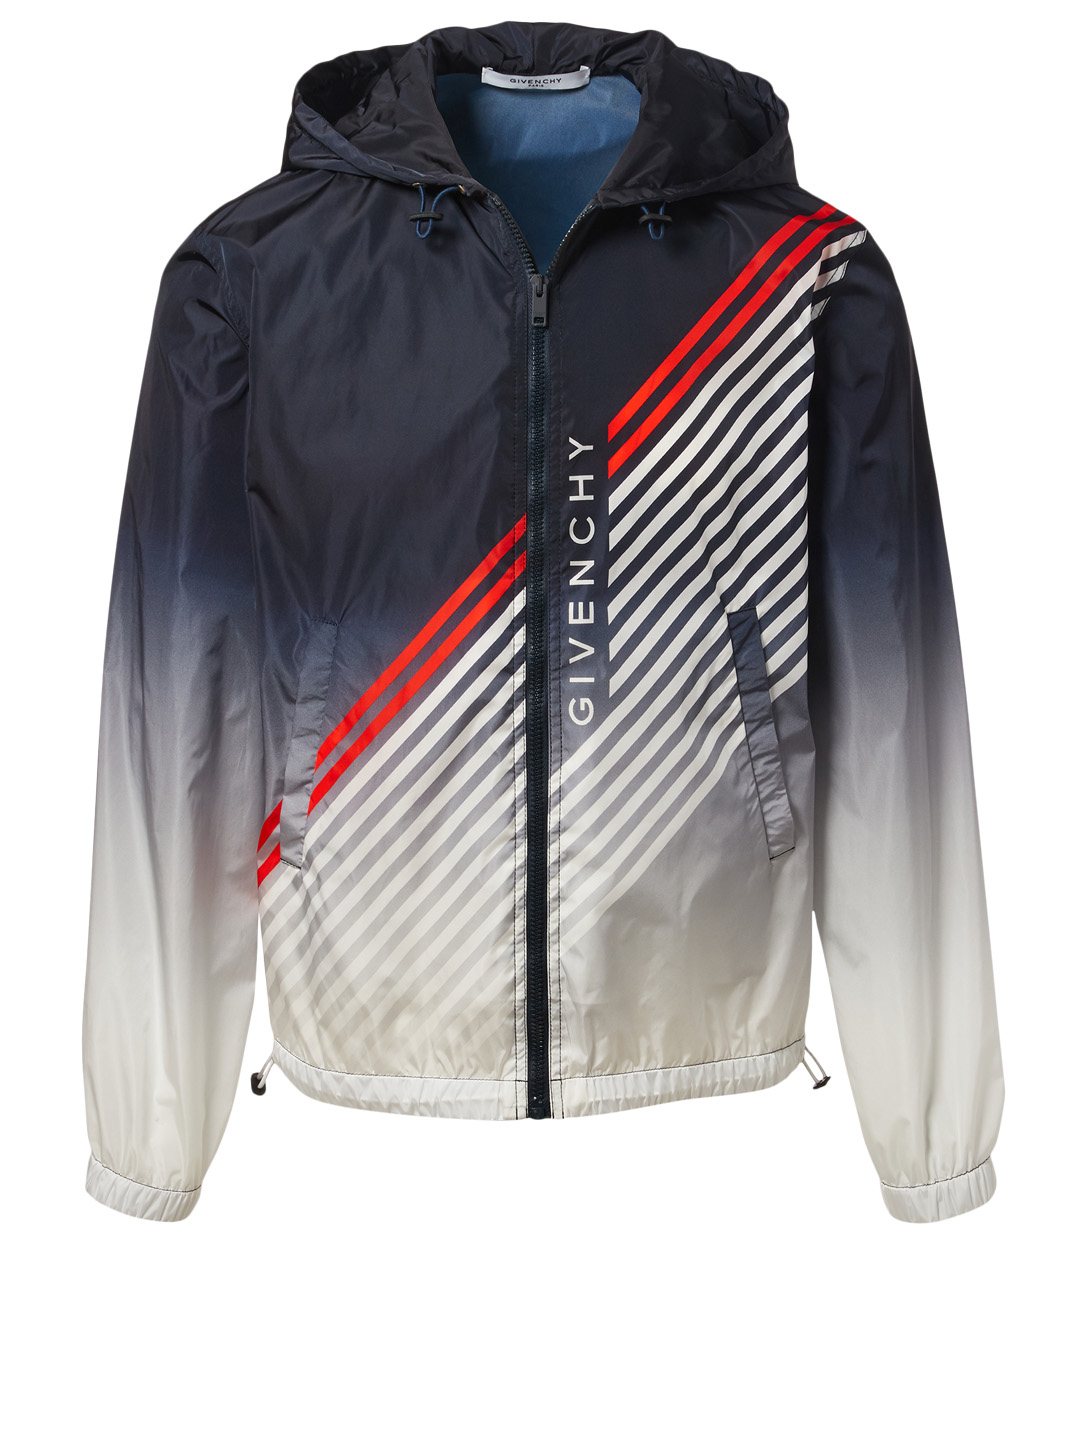 GIVENCHY Windbreaker Jacket With Logo And Stripes Men's Blue